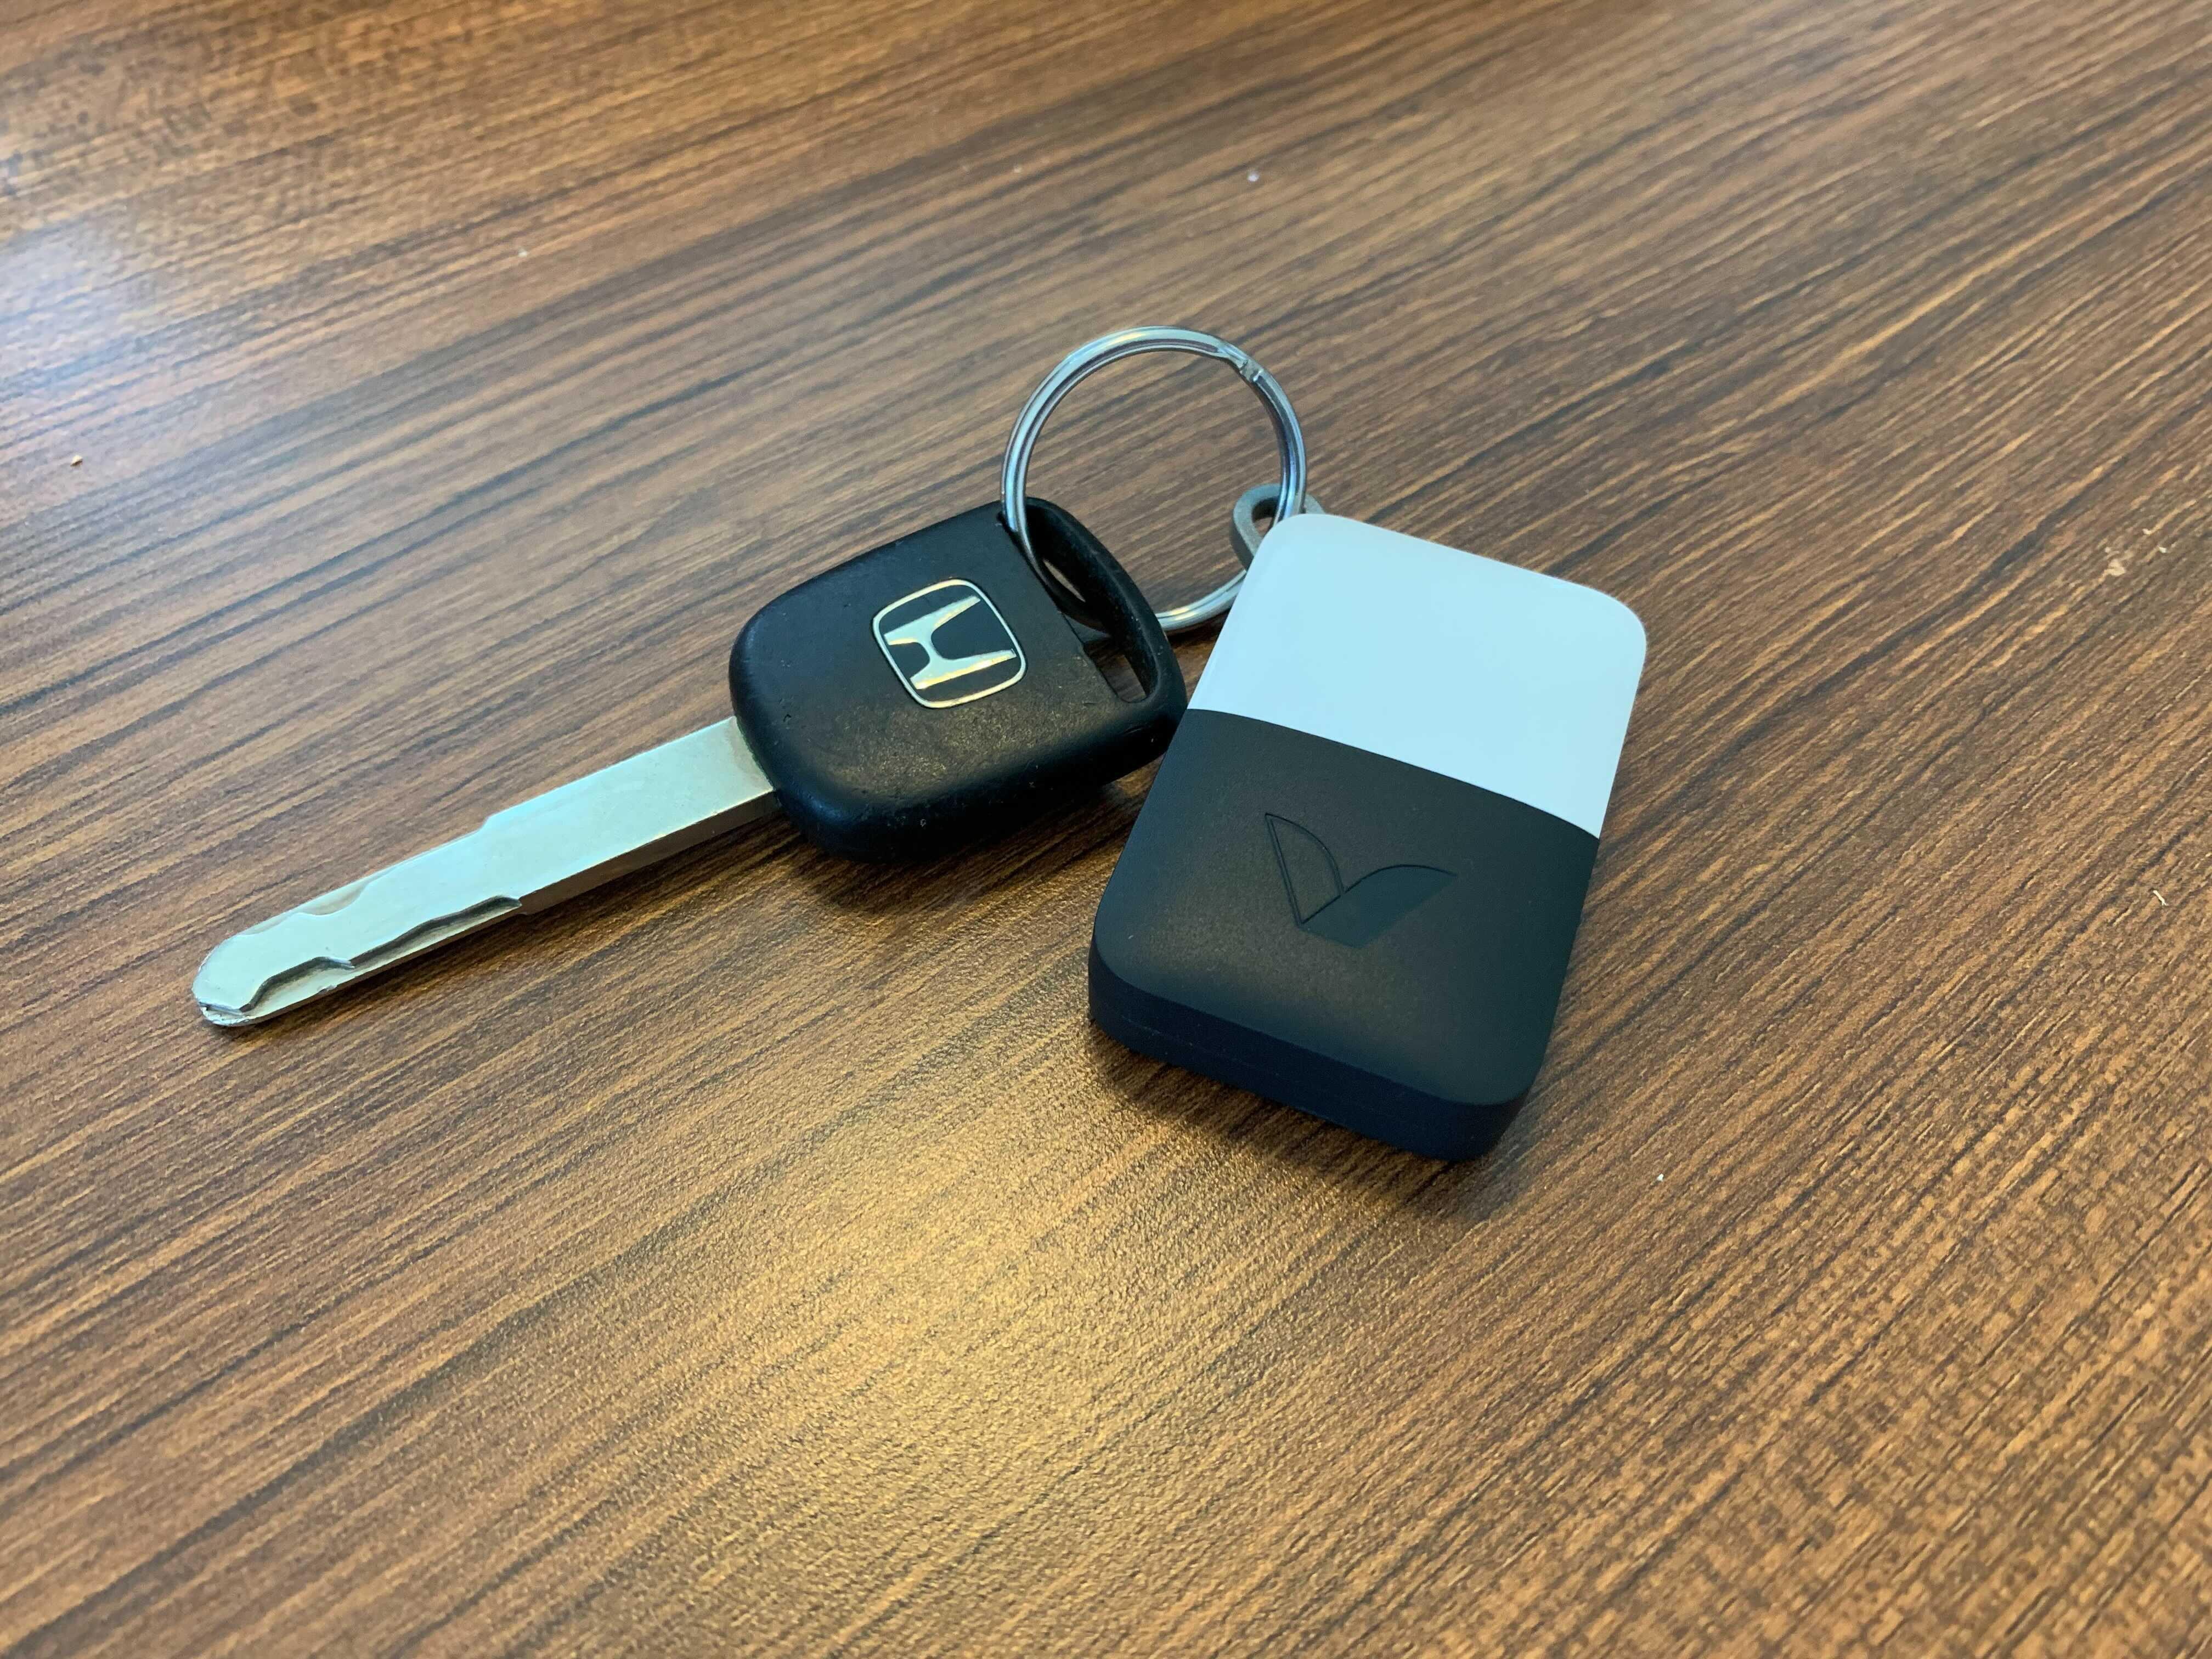 <p>Abode Iota comes with a handful of devices, like this key fob, which can arm and disarm the security system.</p>